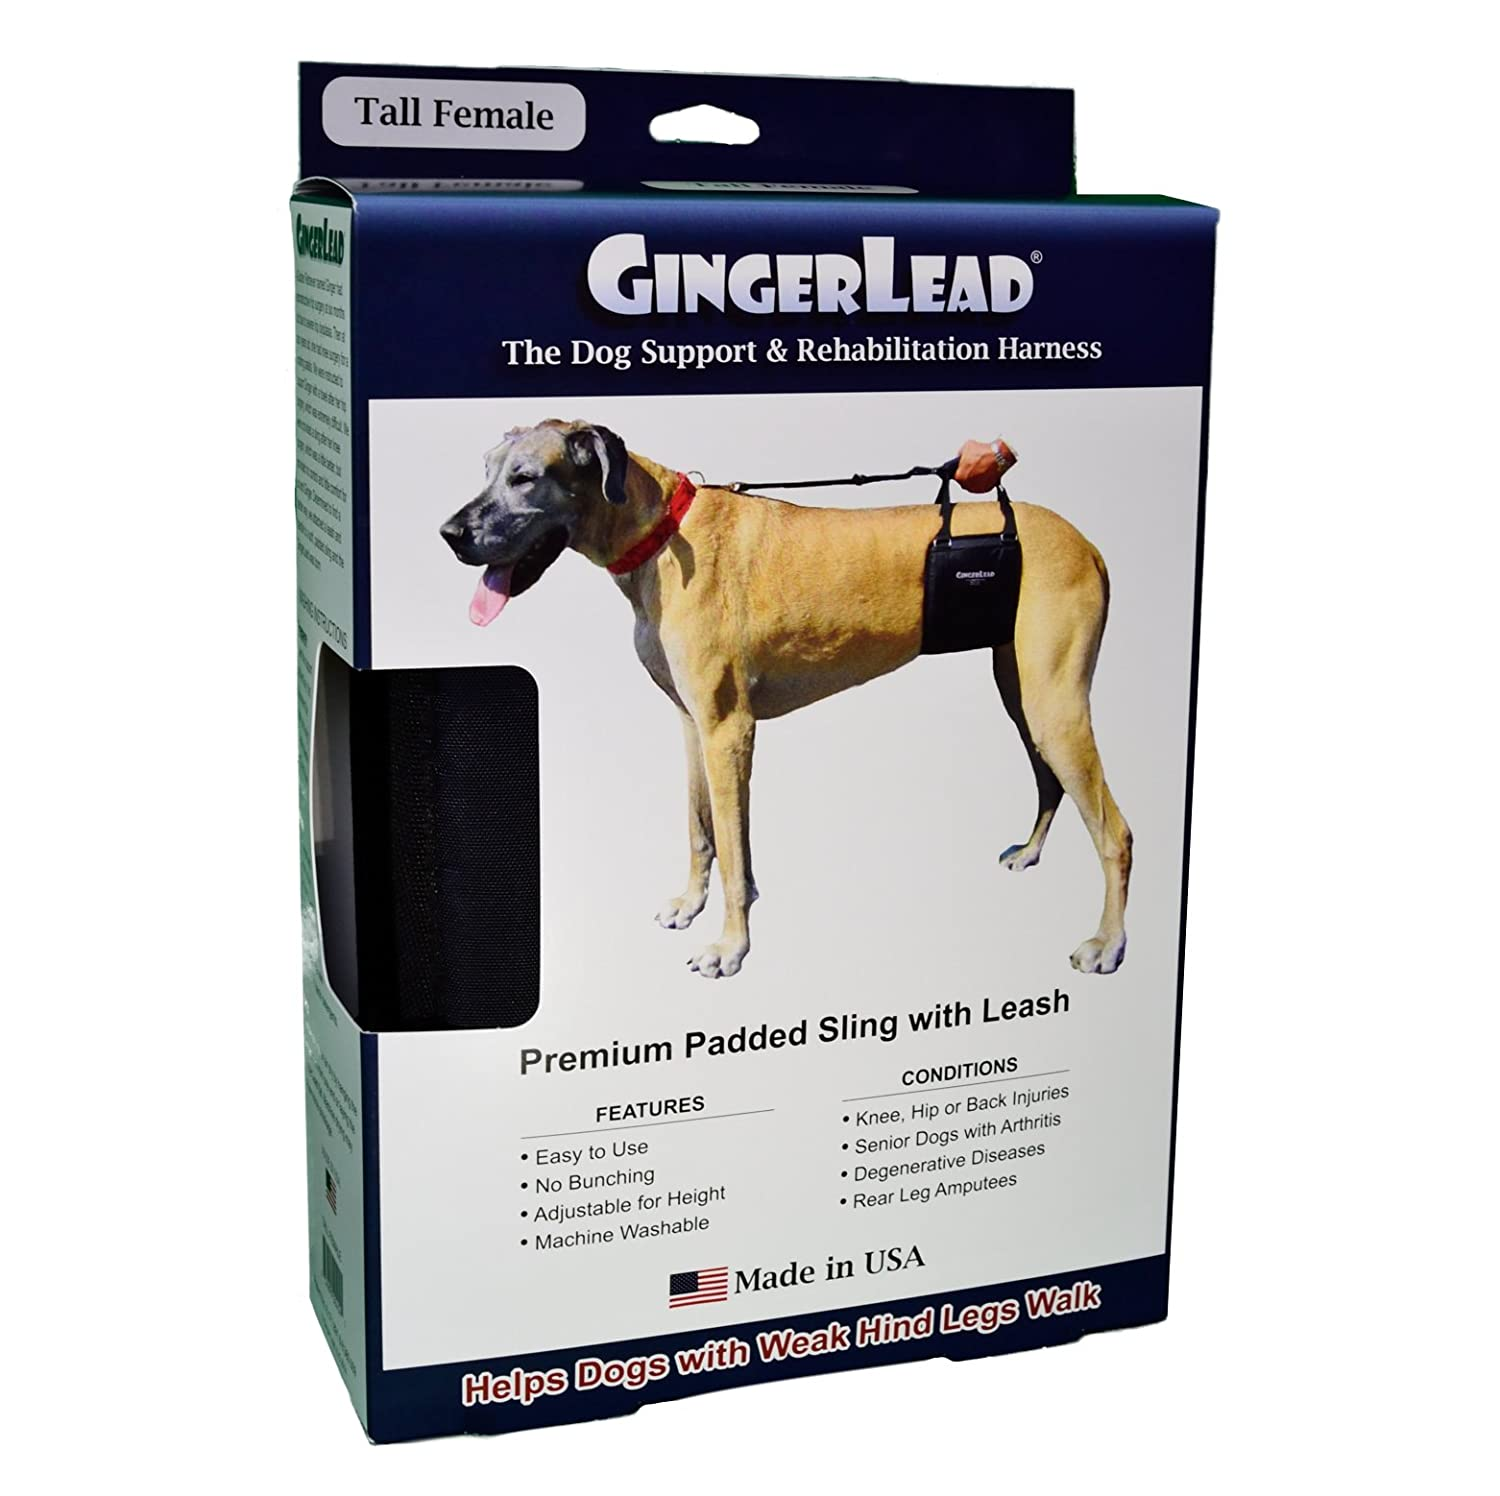 Amazon gingerlead dog support rehabilitation harness tall amazon gingerlead dog support rehabilitation harness tall female sling for tall lean dogs ideal for aging disabled or injured dogs needing nvjuhfo Choice Image